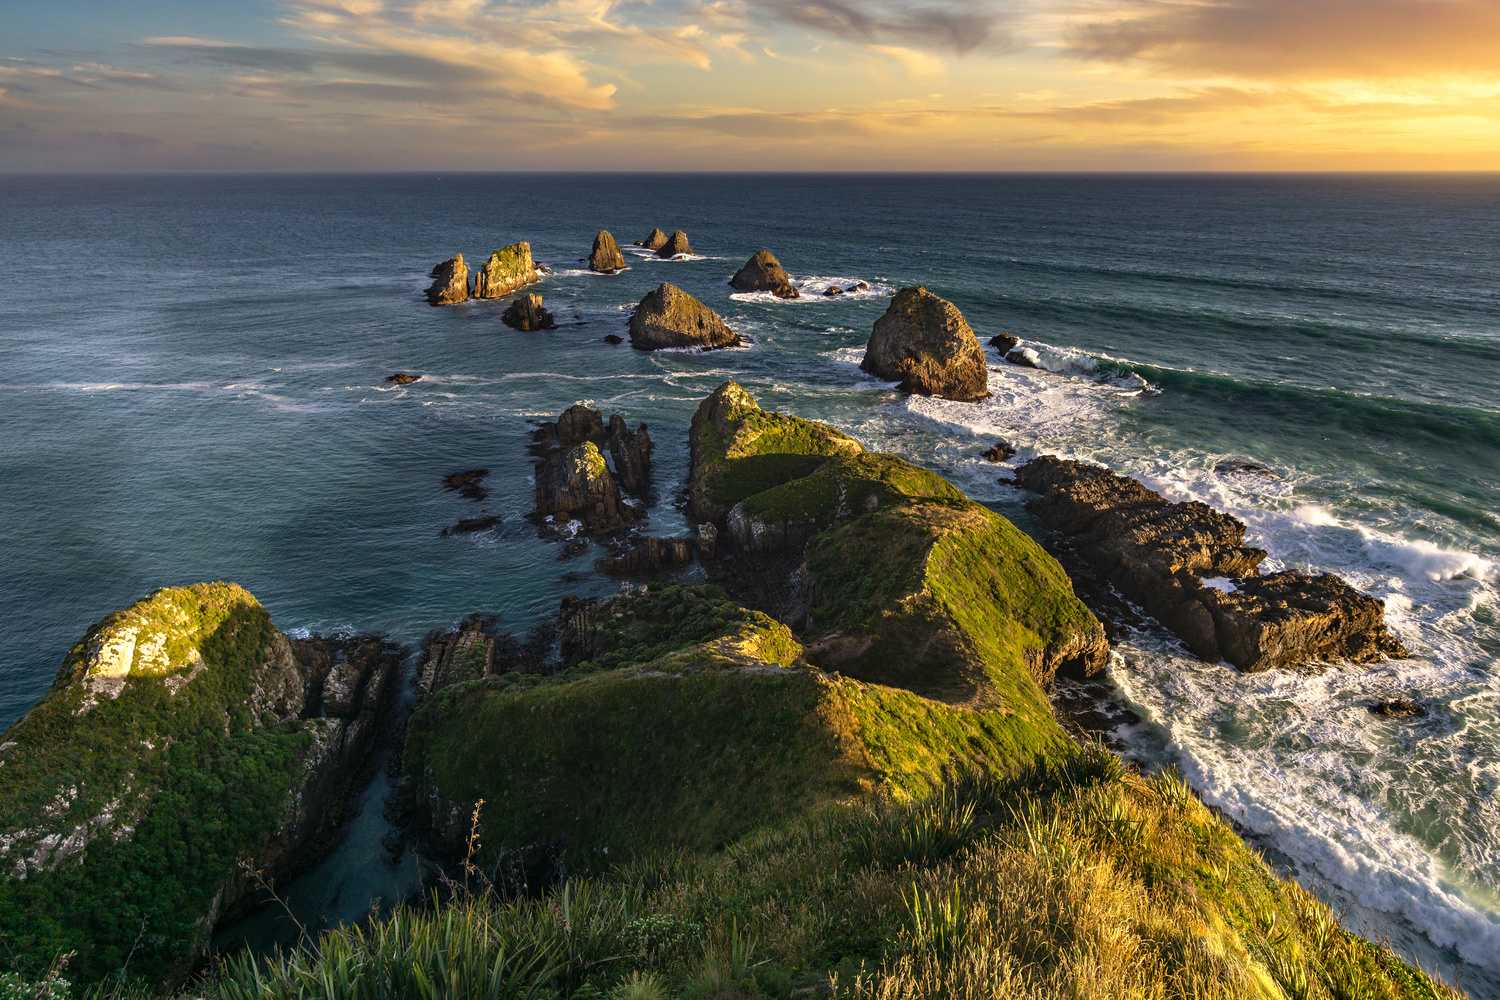 Sunset at Nugget Point by Jesse Vance